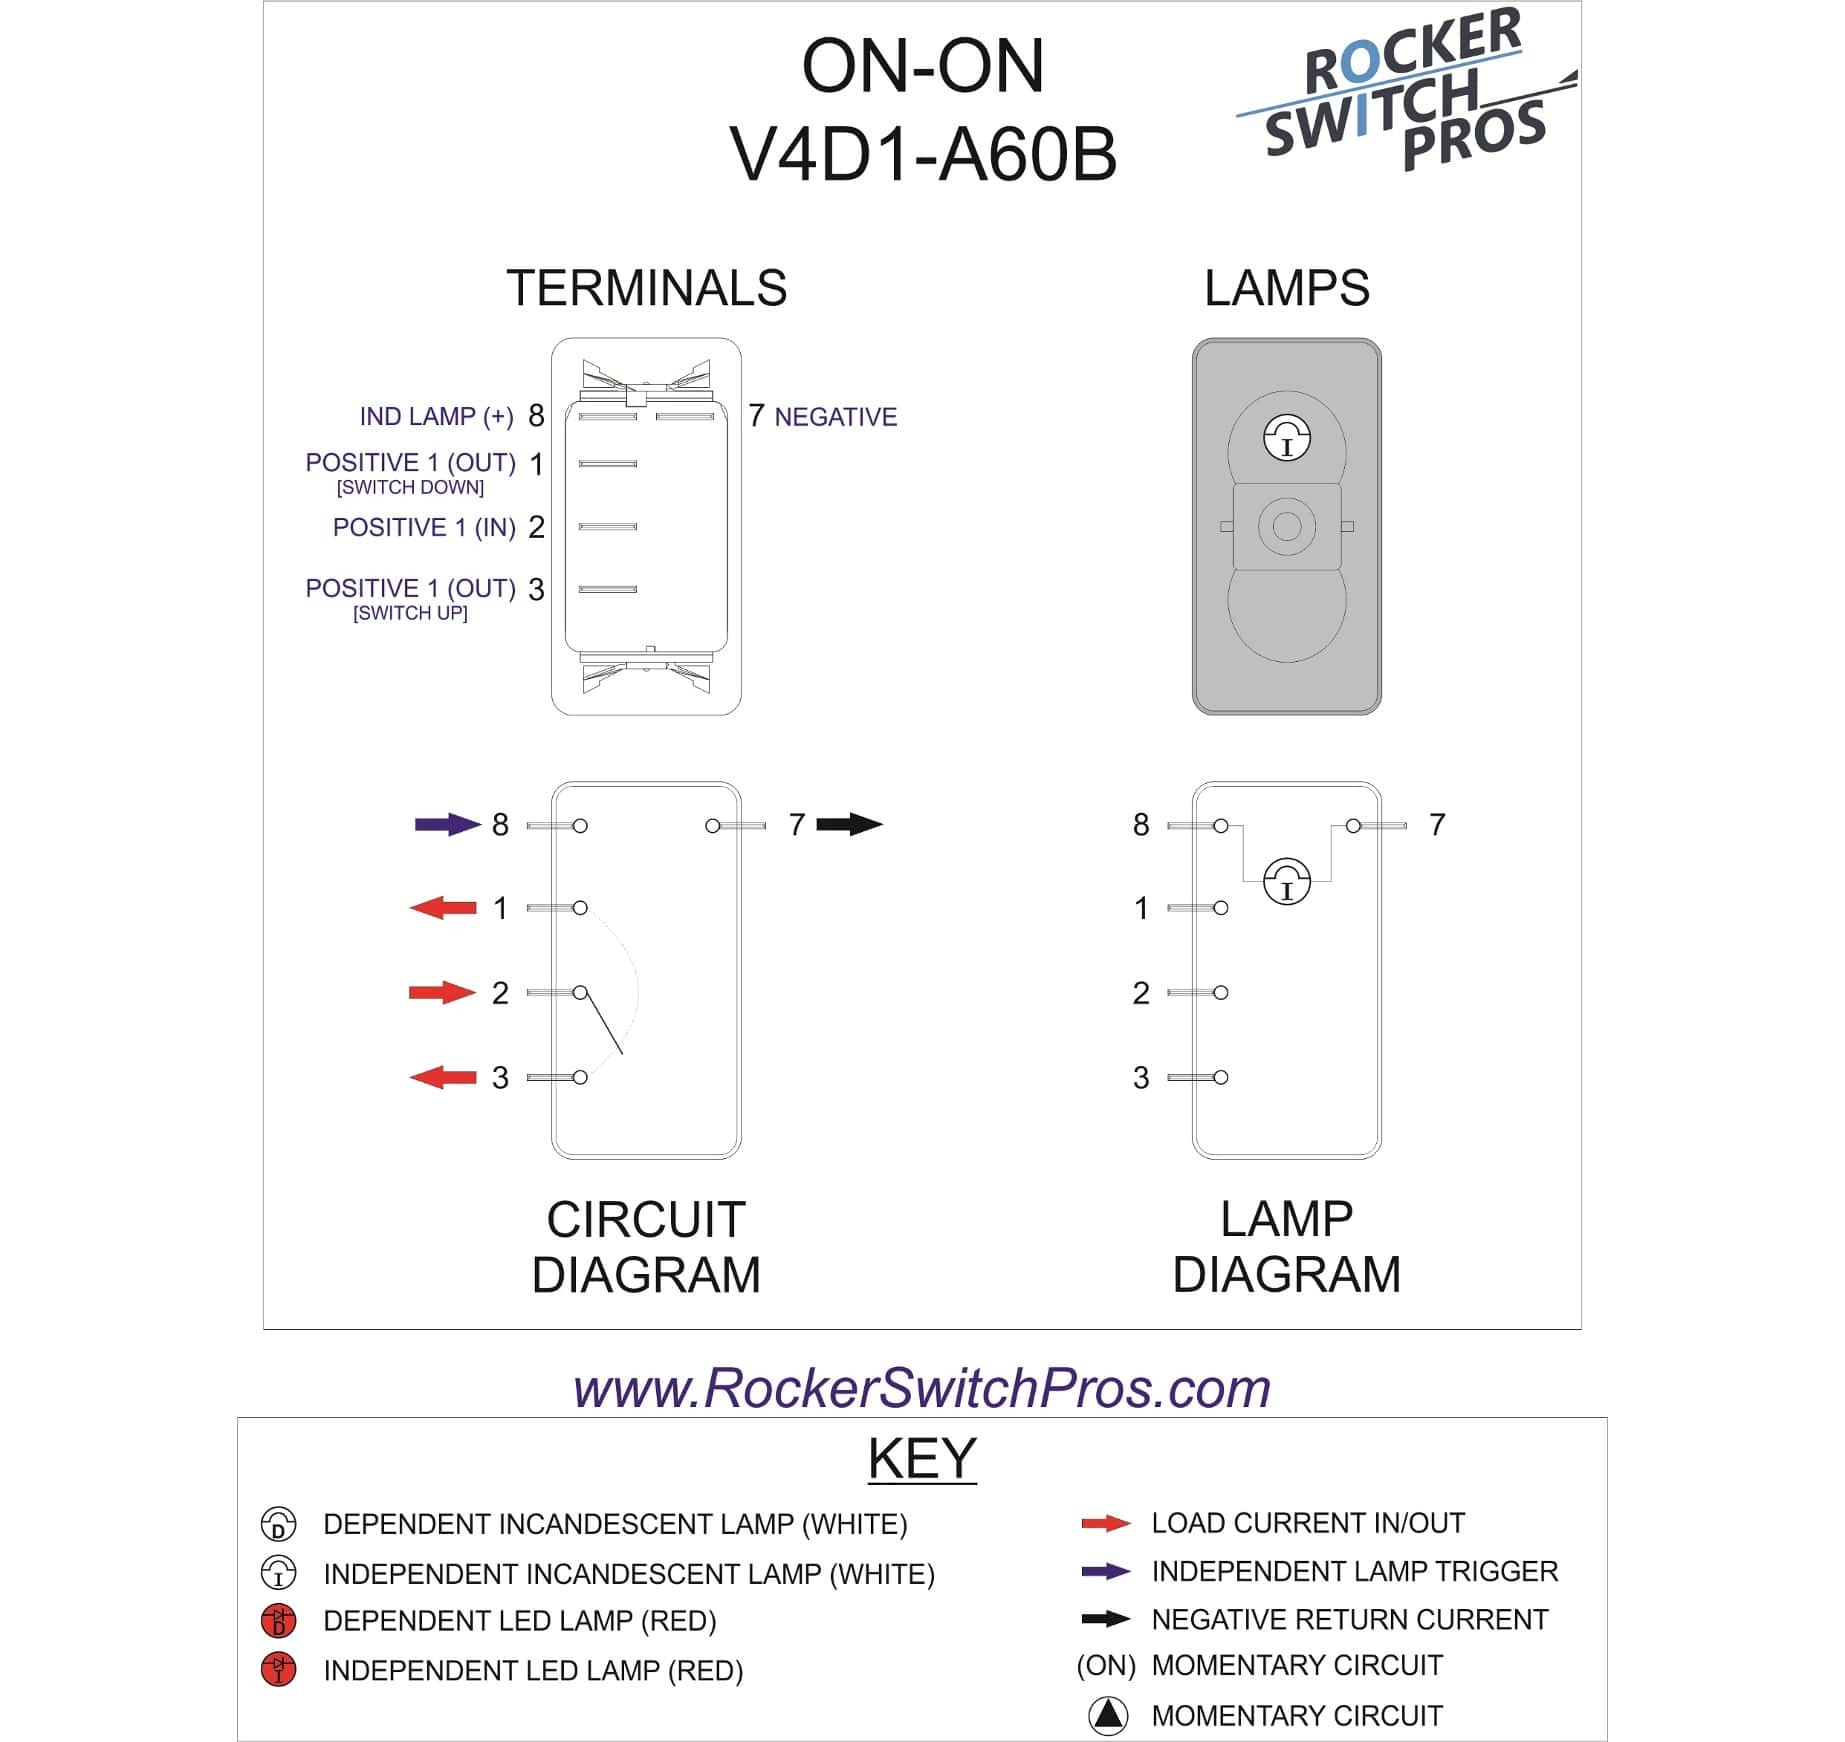 2 pole toggle switch wiring diagram Collection-ON Rocker Switch Ind Lamp Three Way Brilliant Wiring Diagram 7-j